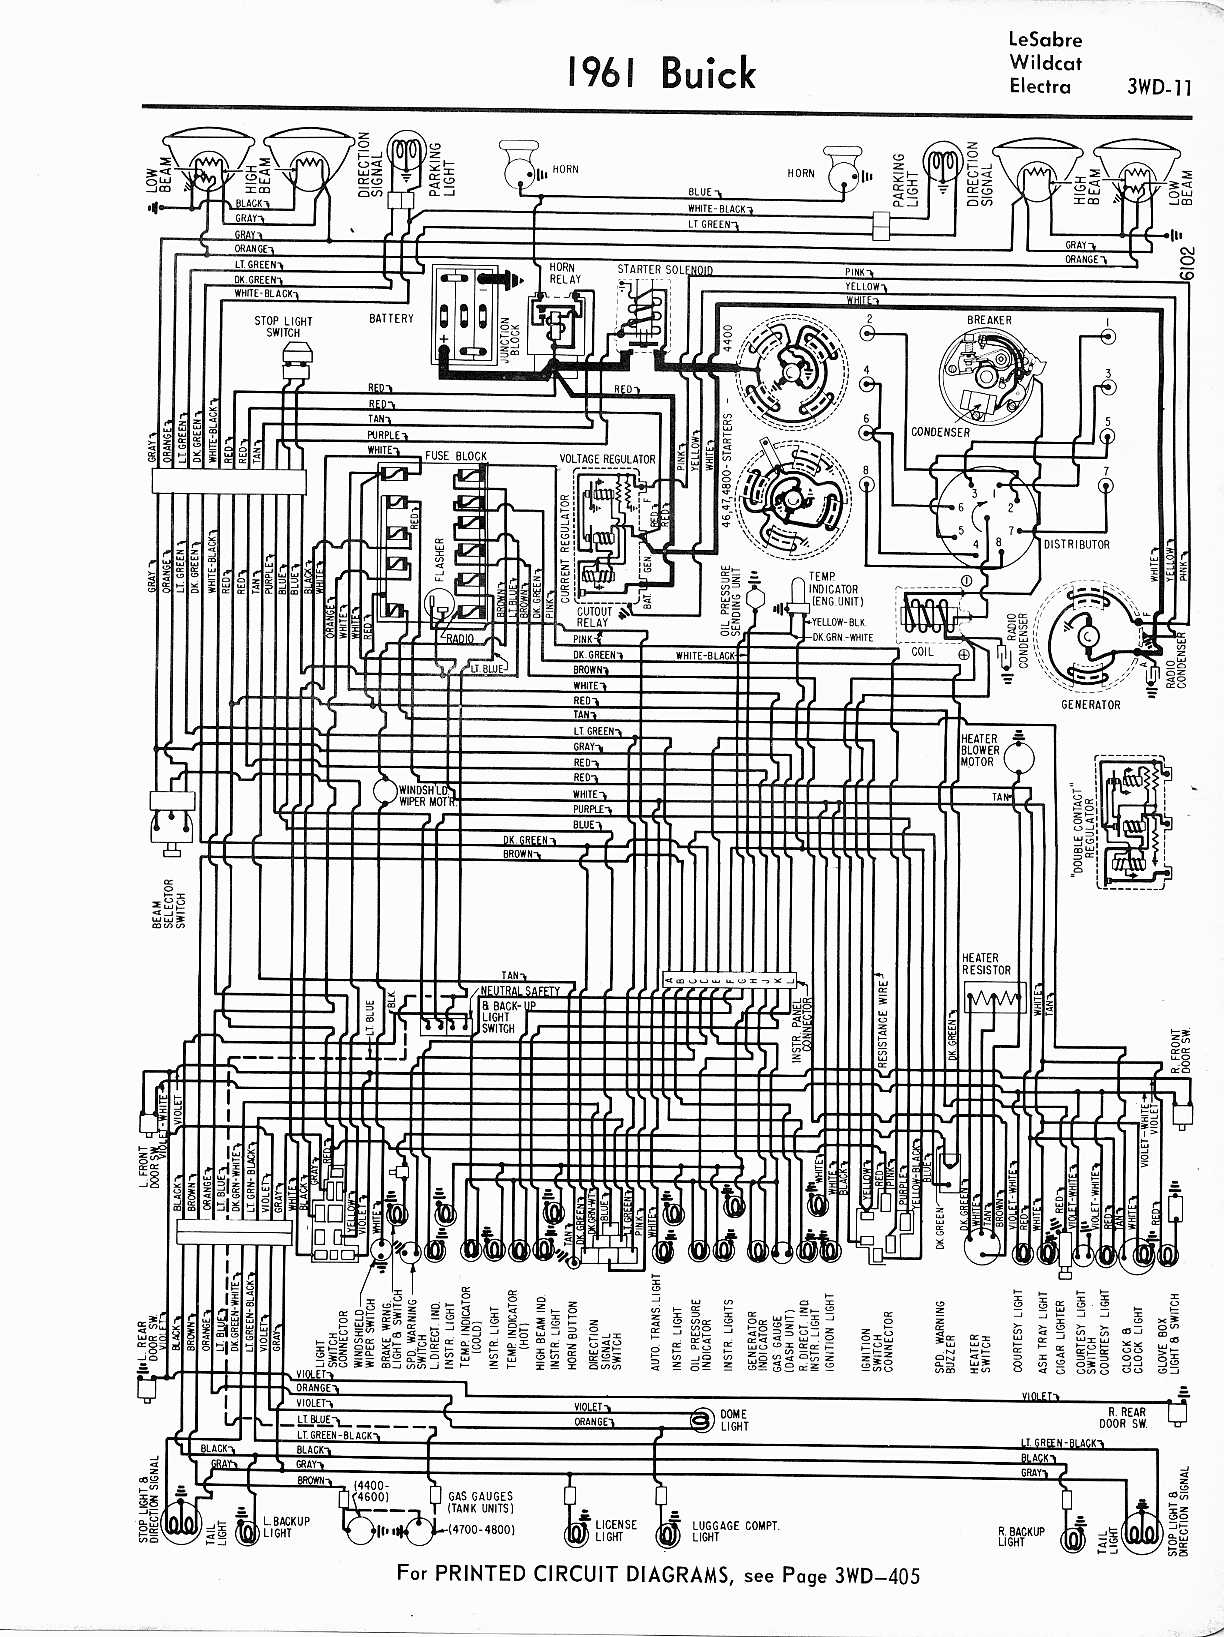 MWireBuic65_3WD 011 buick wiring diagrams 1957 1965 1999 buick century wiring diagram at gsmportal.co